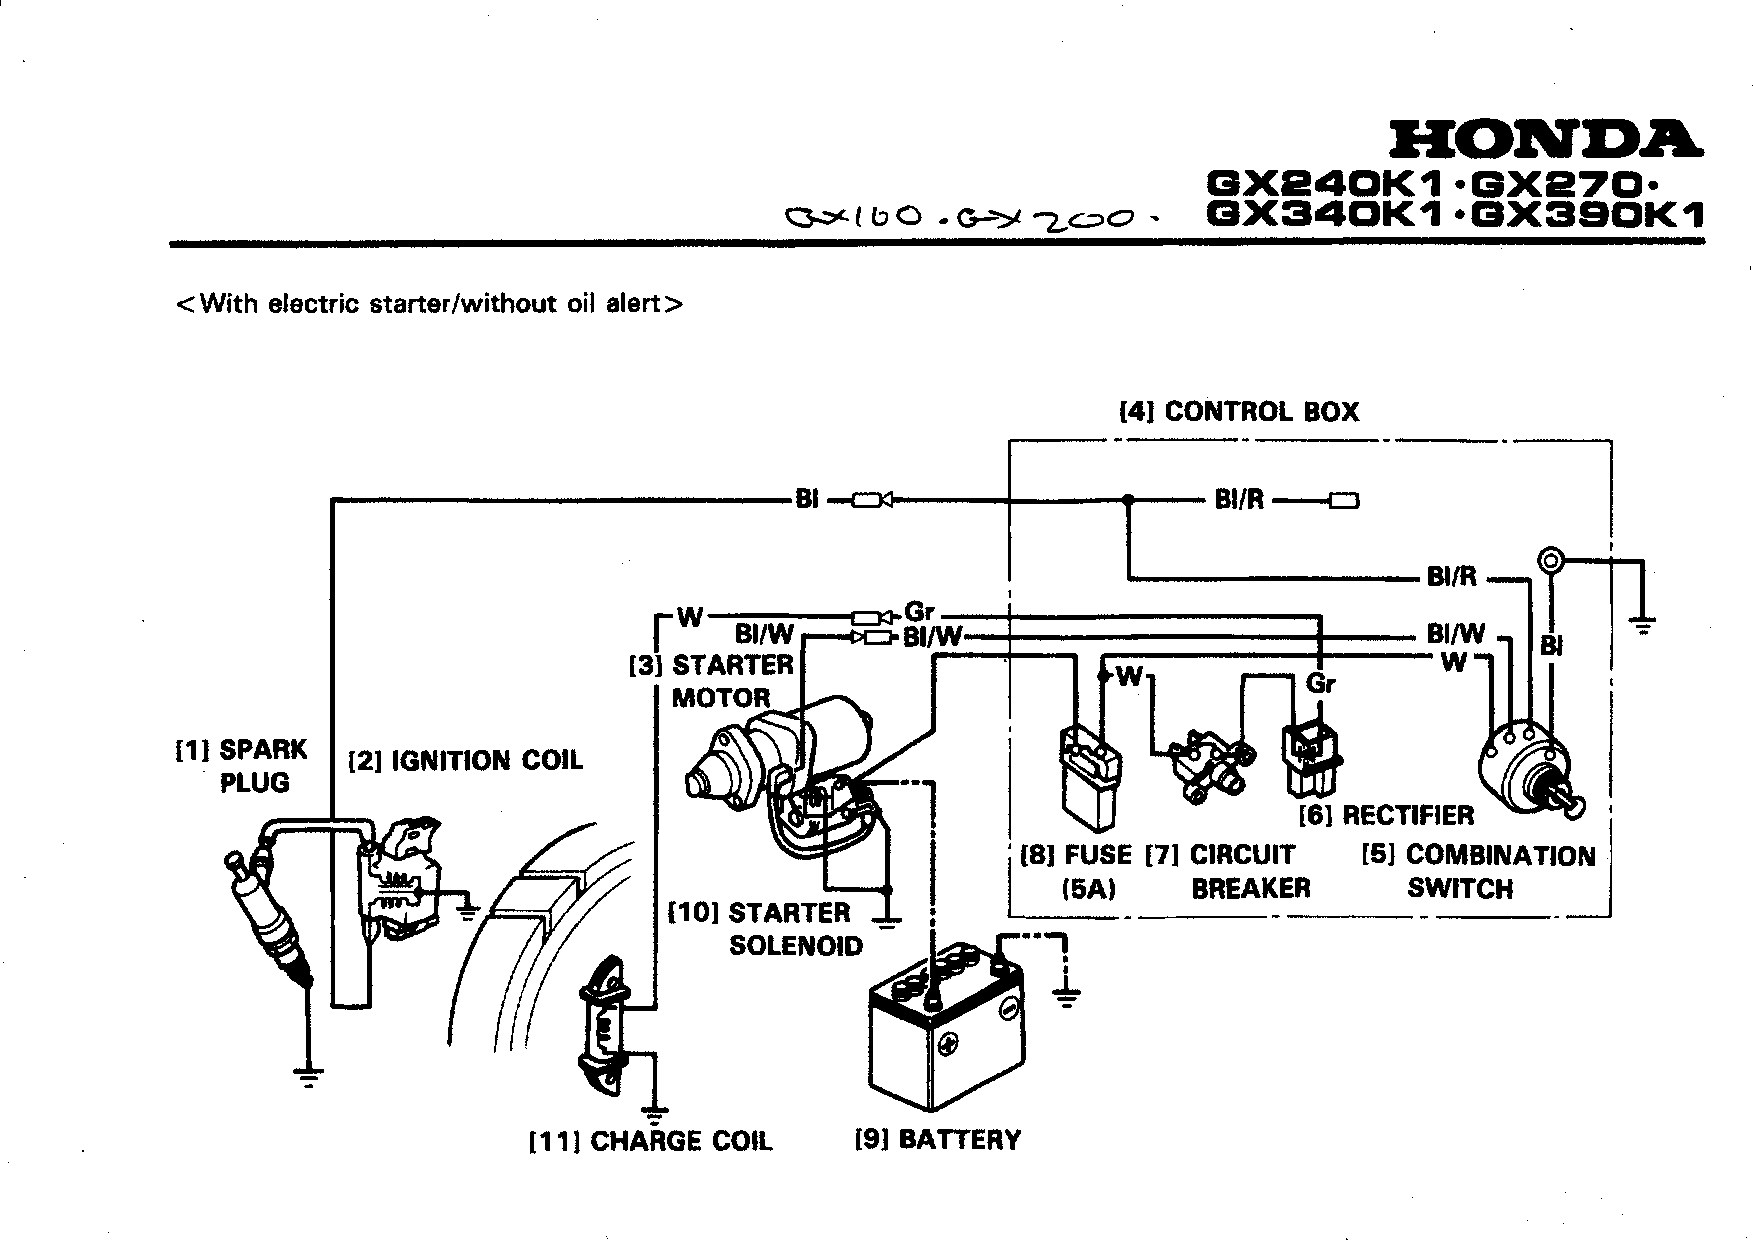 hight resolution of useful information honda gx200 wiring diagram electric start wiring diagram without oil alert for gx160 gx200